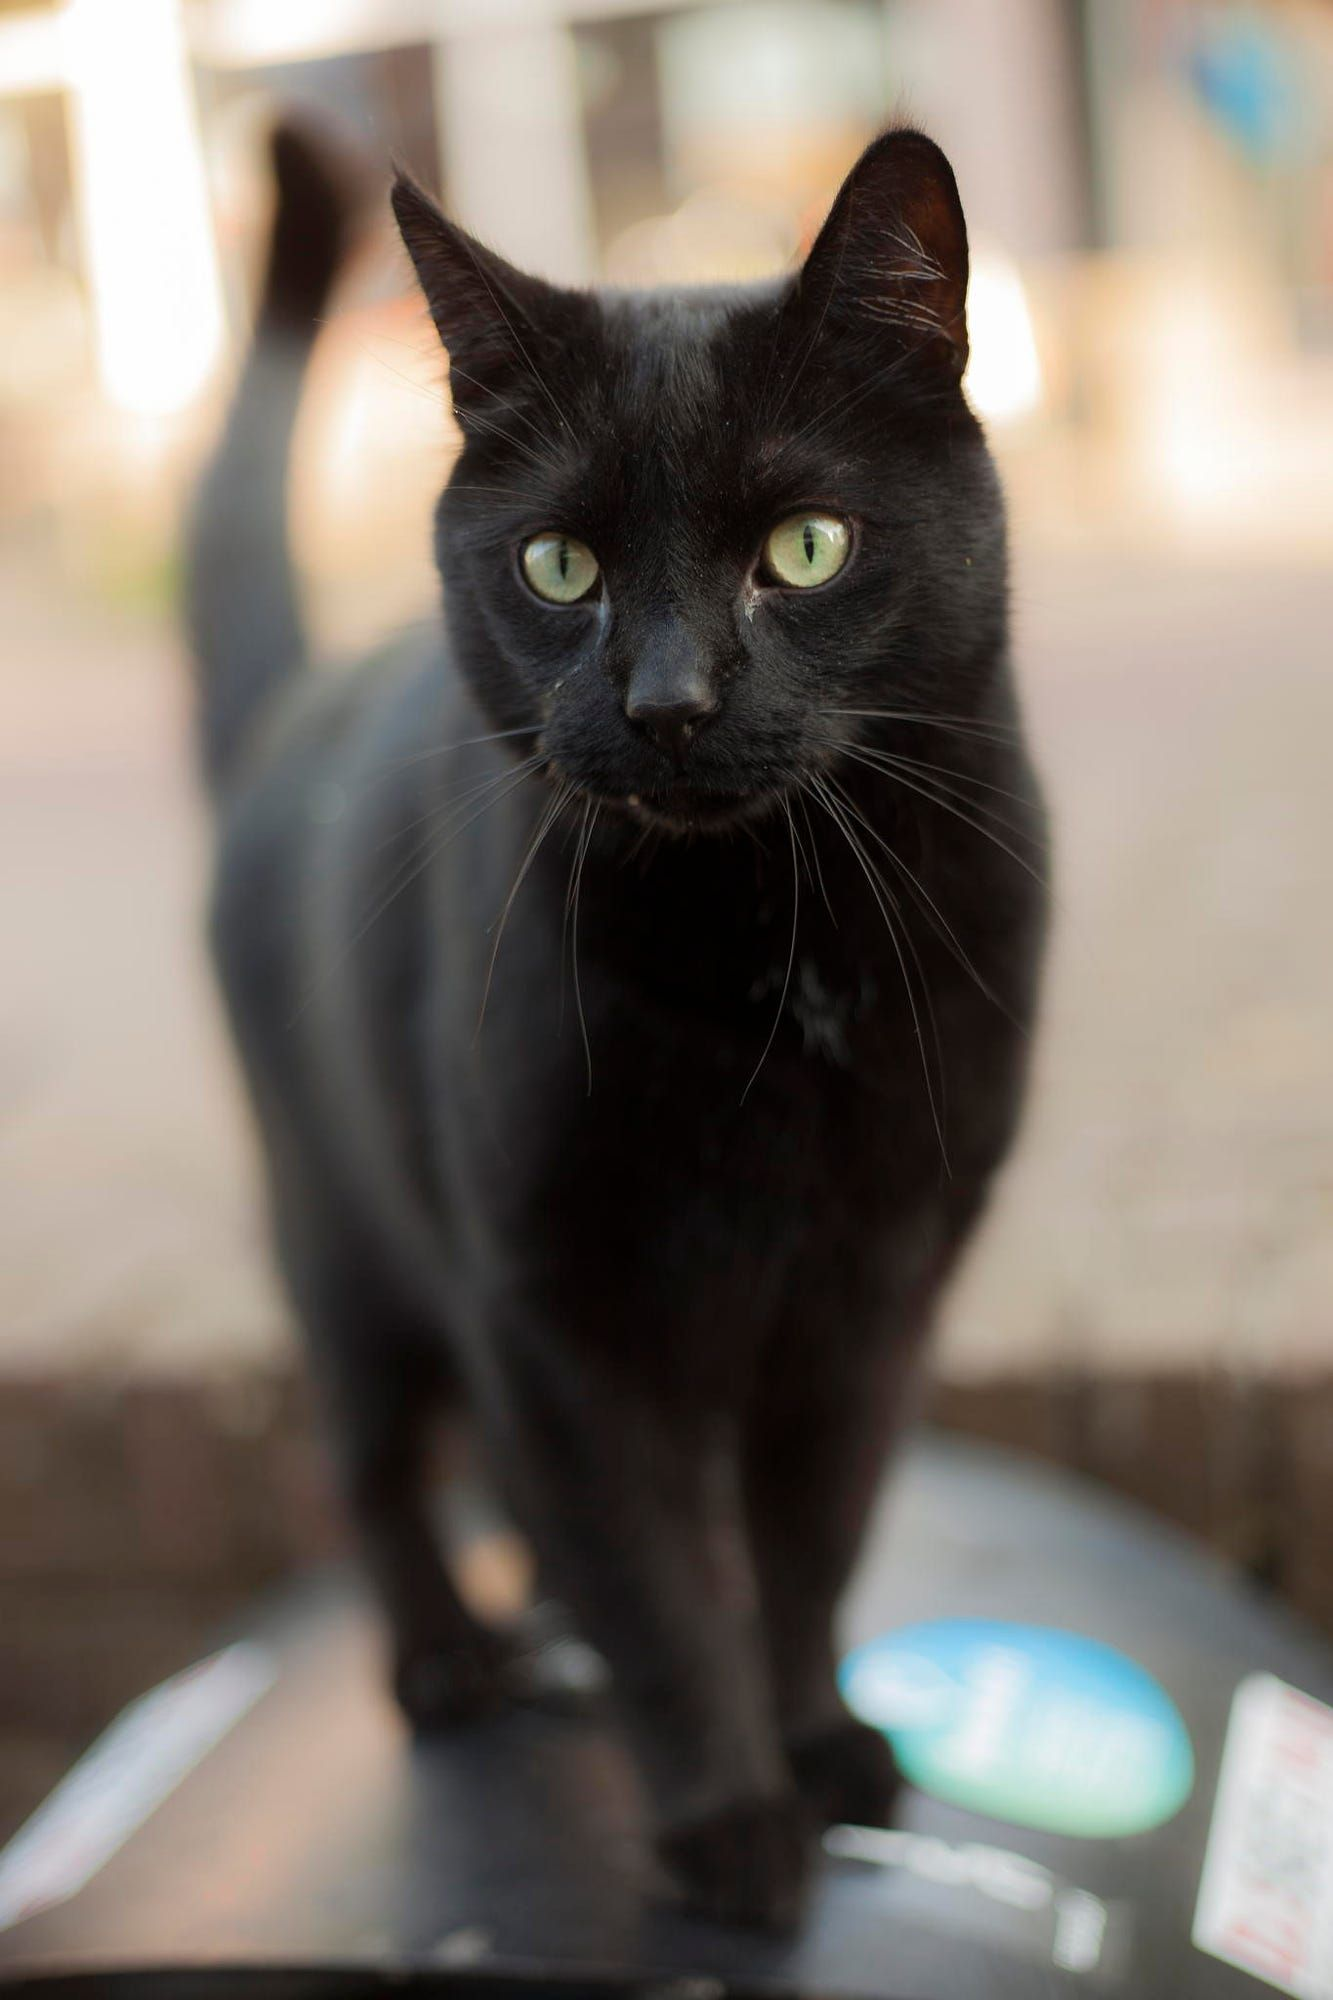 So Handsome Looks Like My Casper Animal Photography Pinterest - Meet scrappy 19 year old black cat grew unique marble fur due rare skin condition